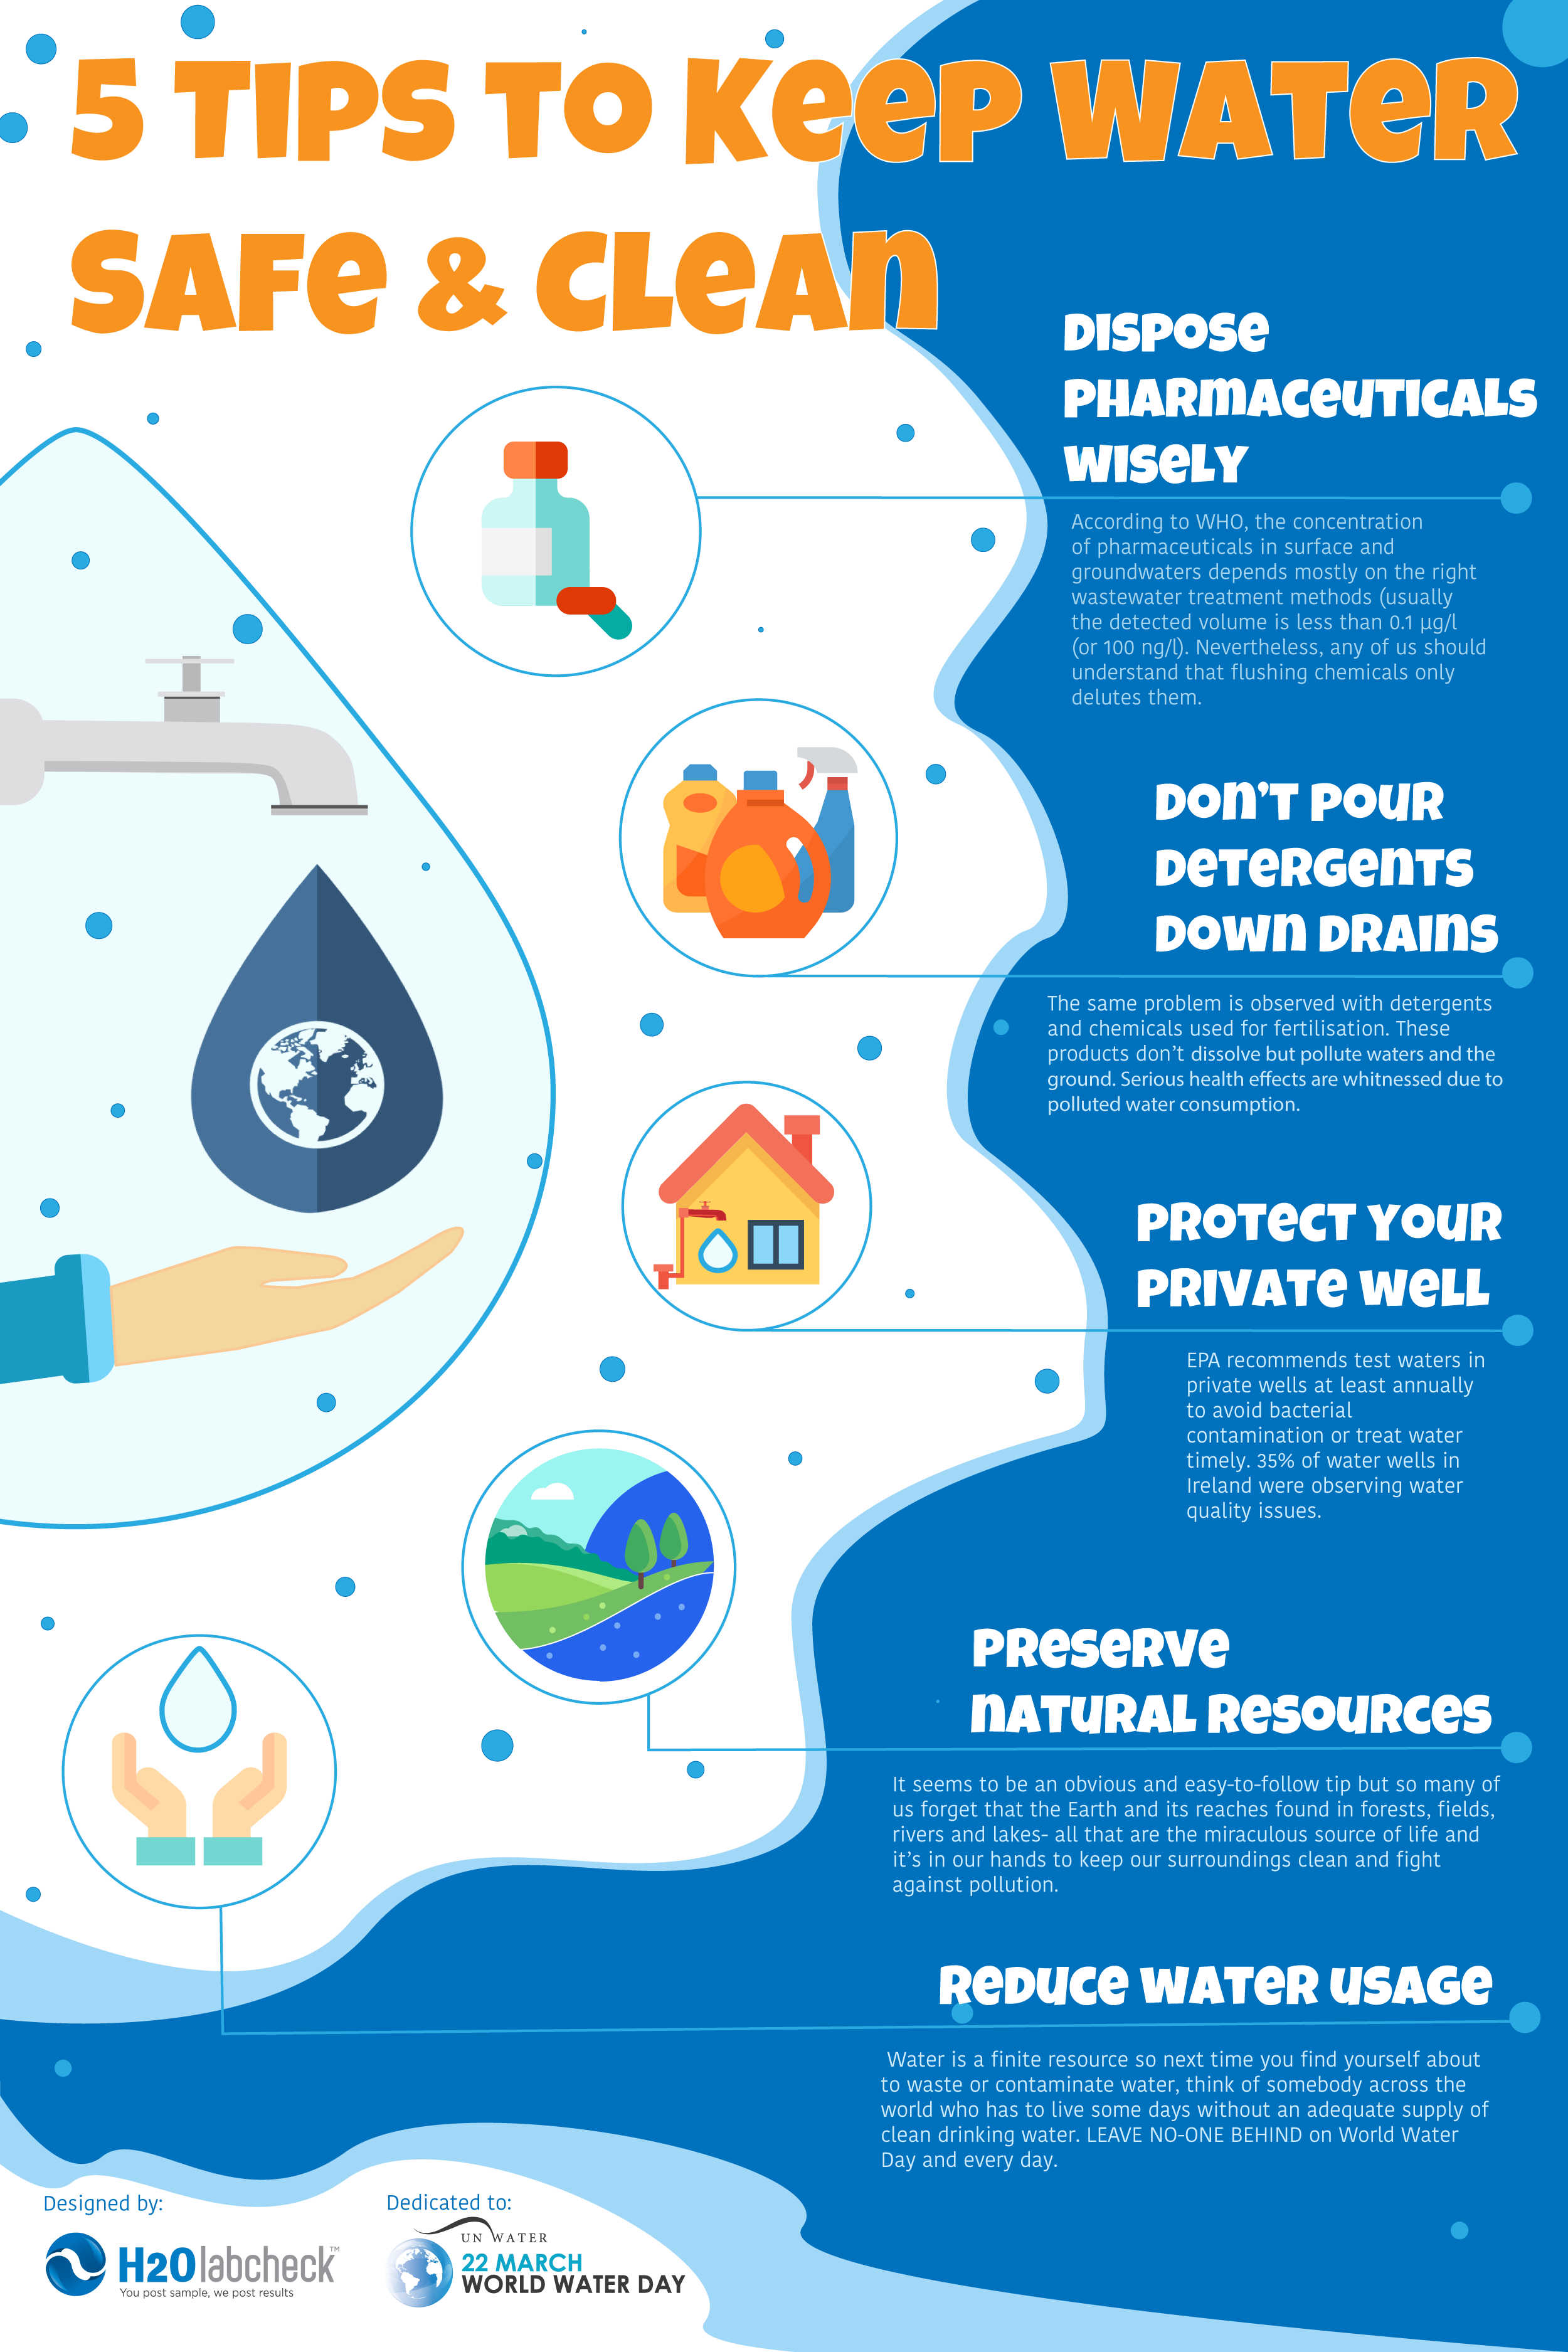 5 water quality tips